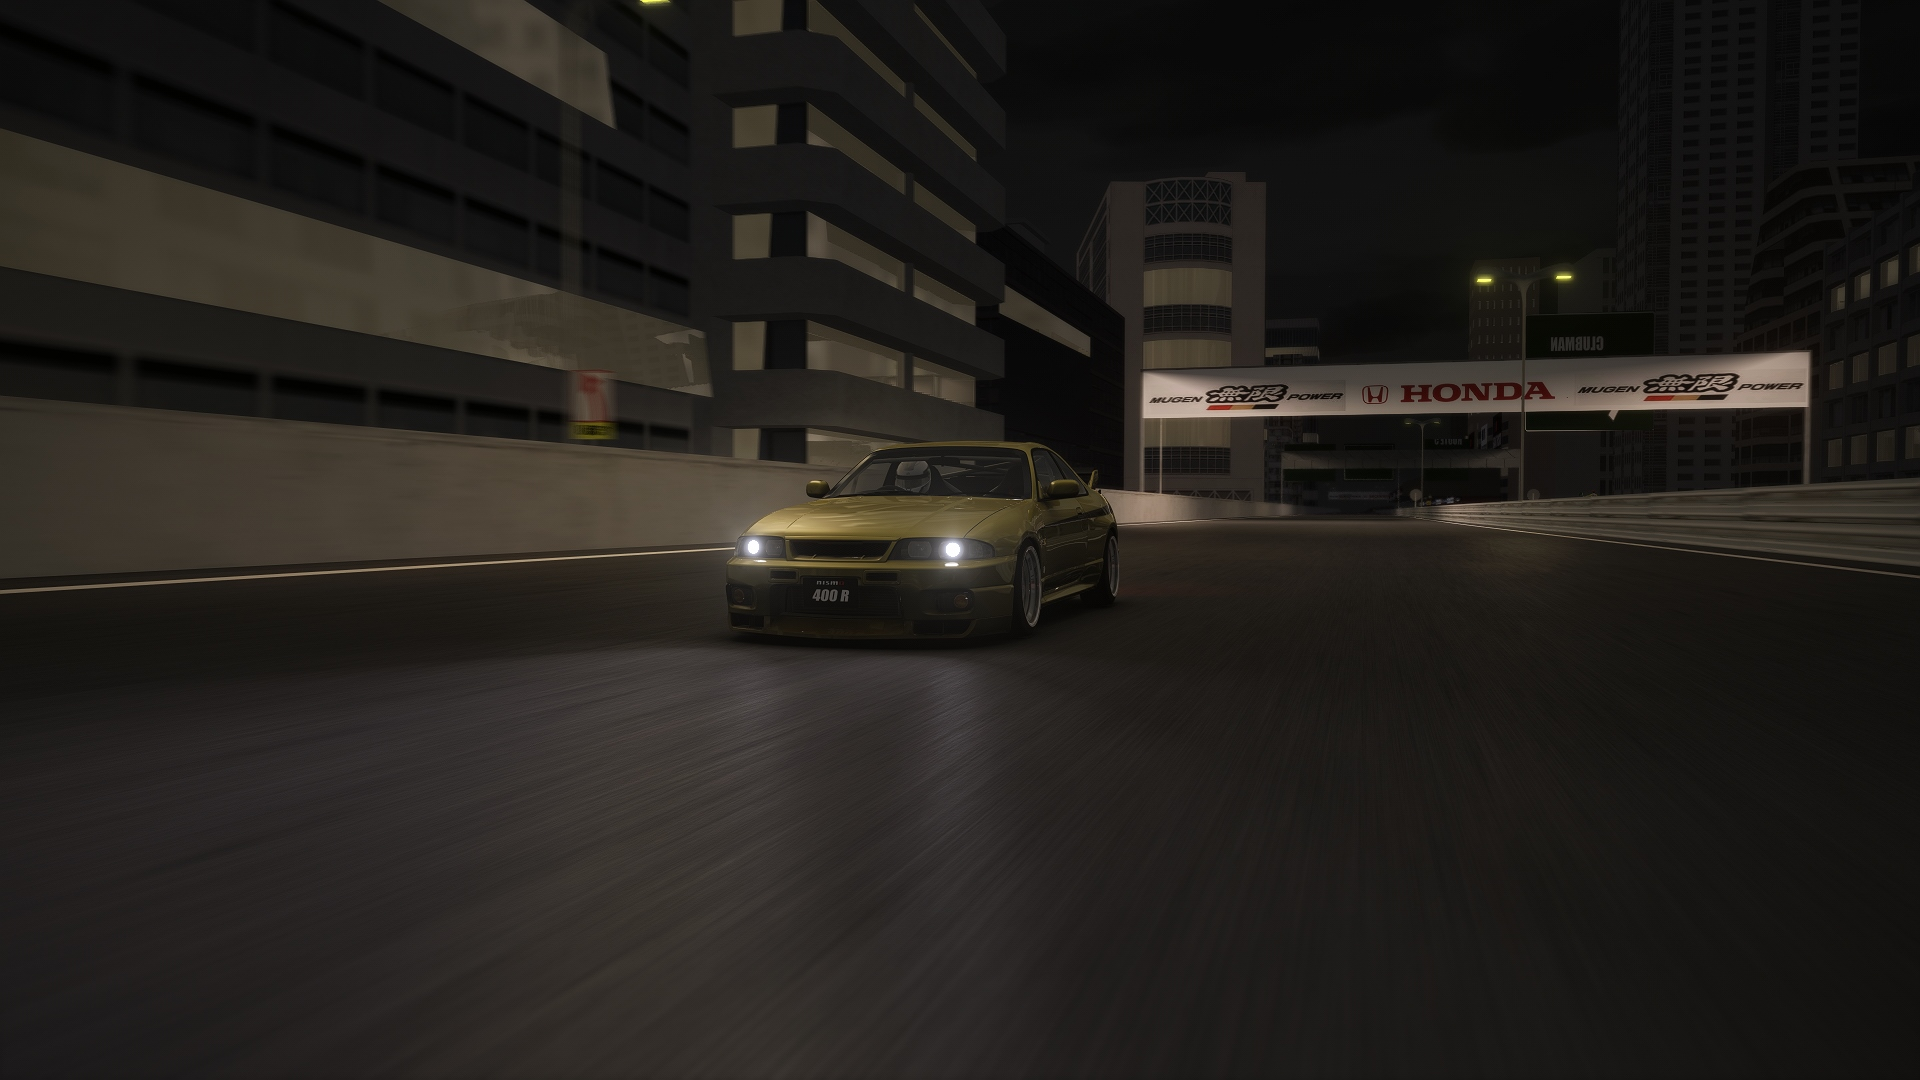 Screenshot_sts_r33_gtr_s3_n1_tuned_400r_special_stage_route_5_3-6-121-1-52-17.jpg